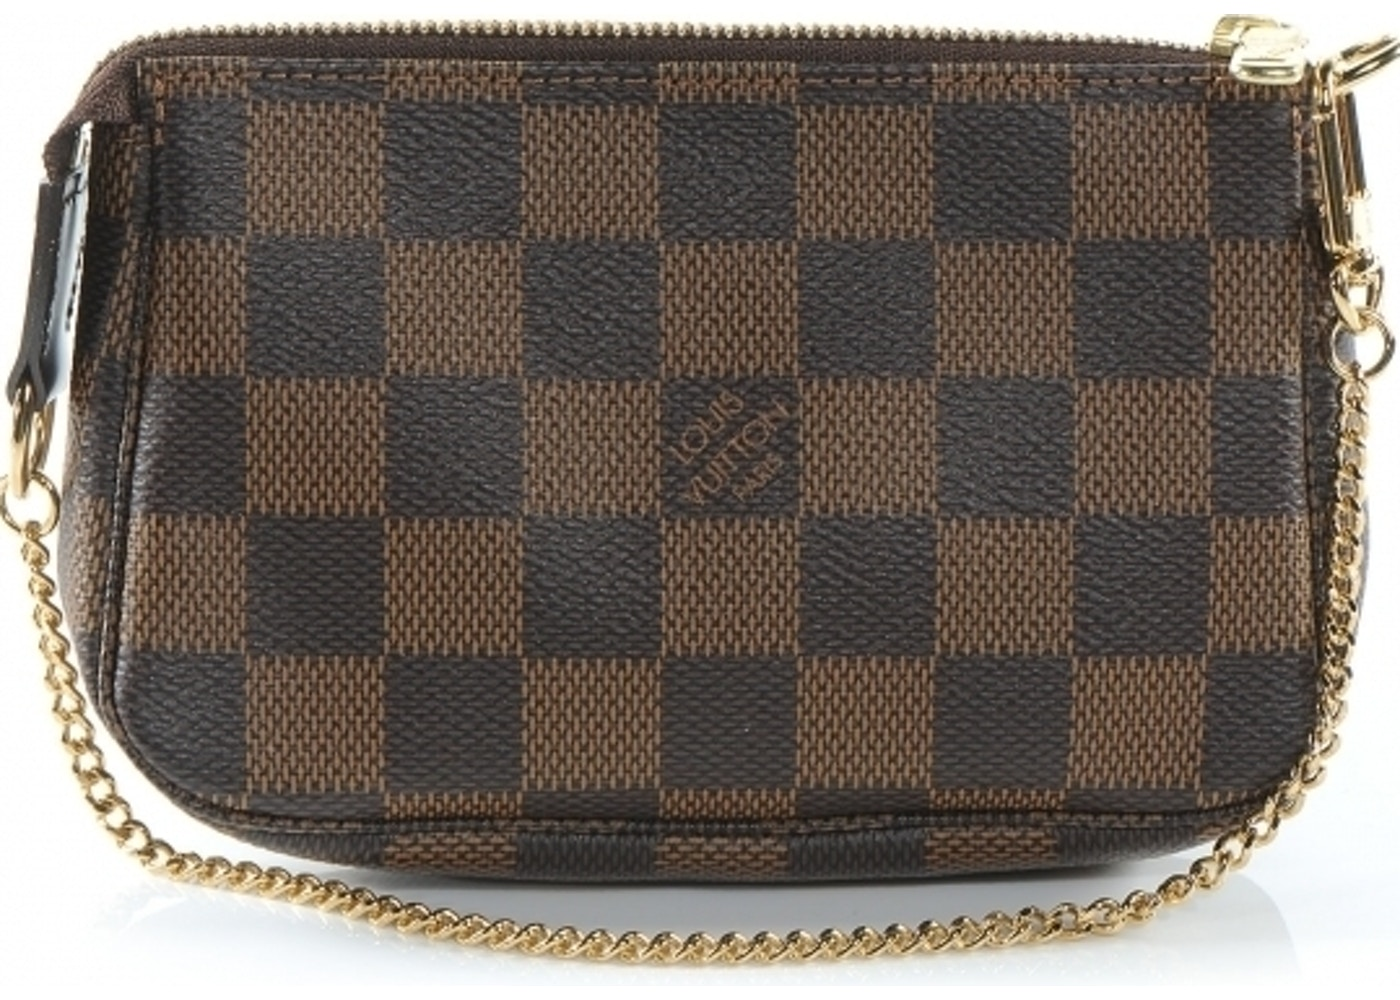 eed4c099b Louis Vuitton Pochette Accessoires Damier Ebene Mini Brown. Damier Ebene  Mini Brown